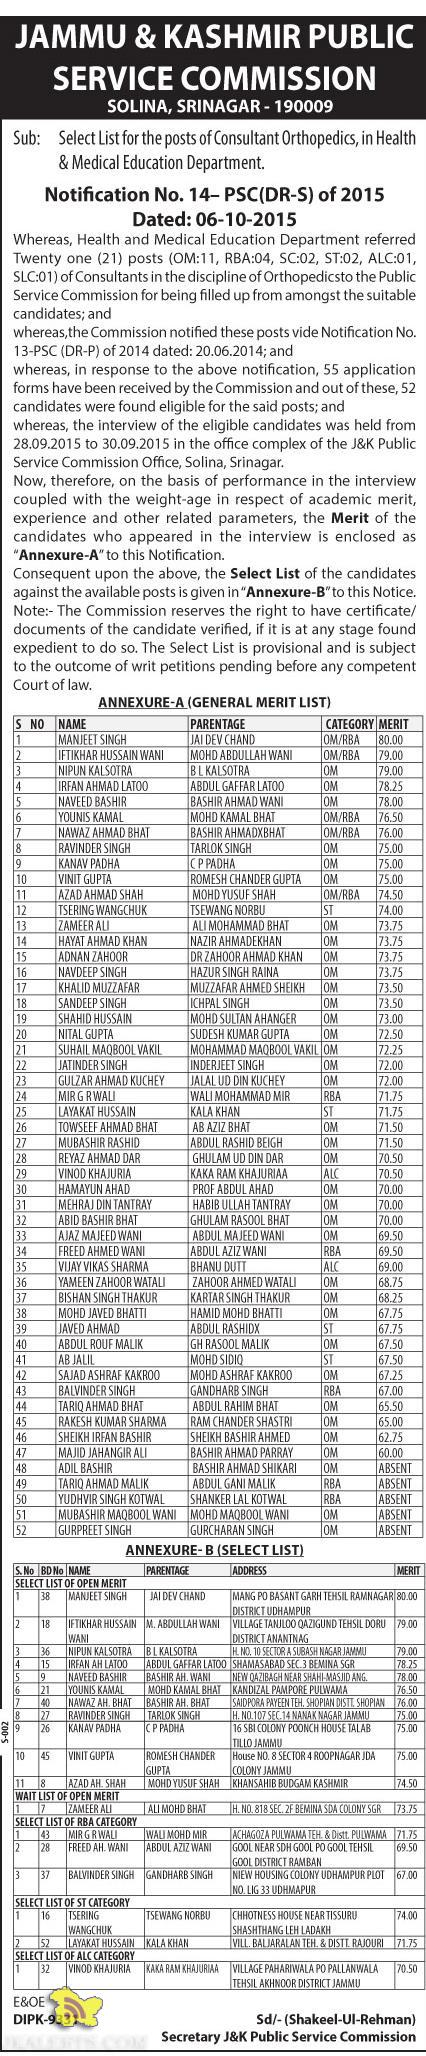 JKPSC Select List of Consultant Orthopedics, in Health & Medical Education Department